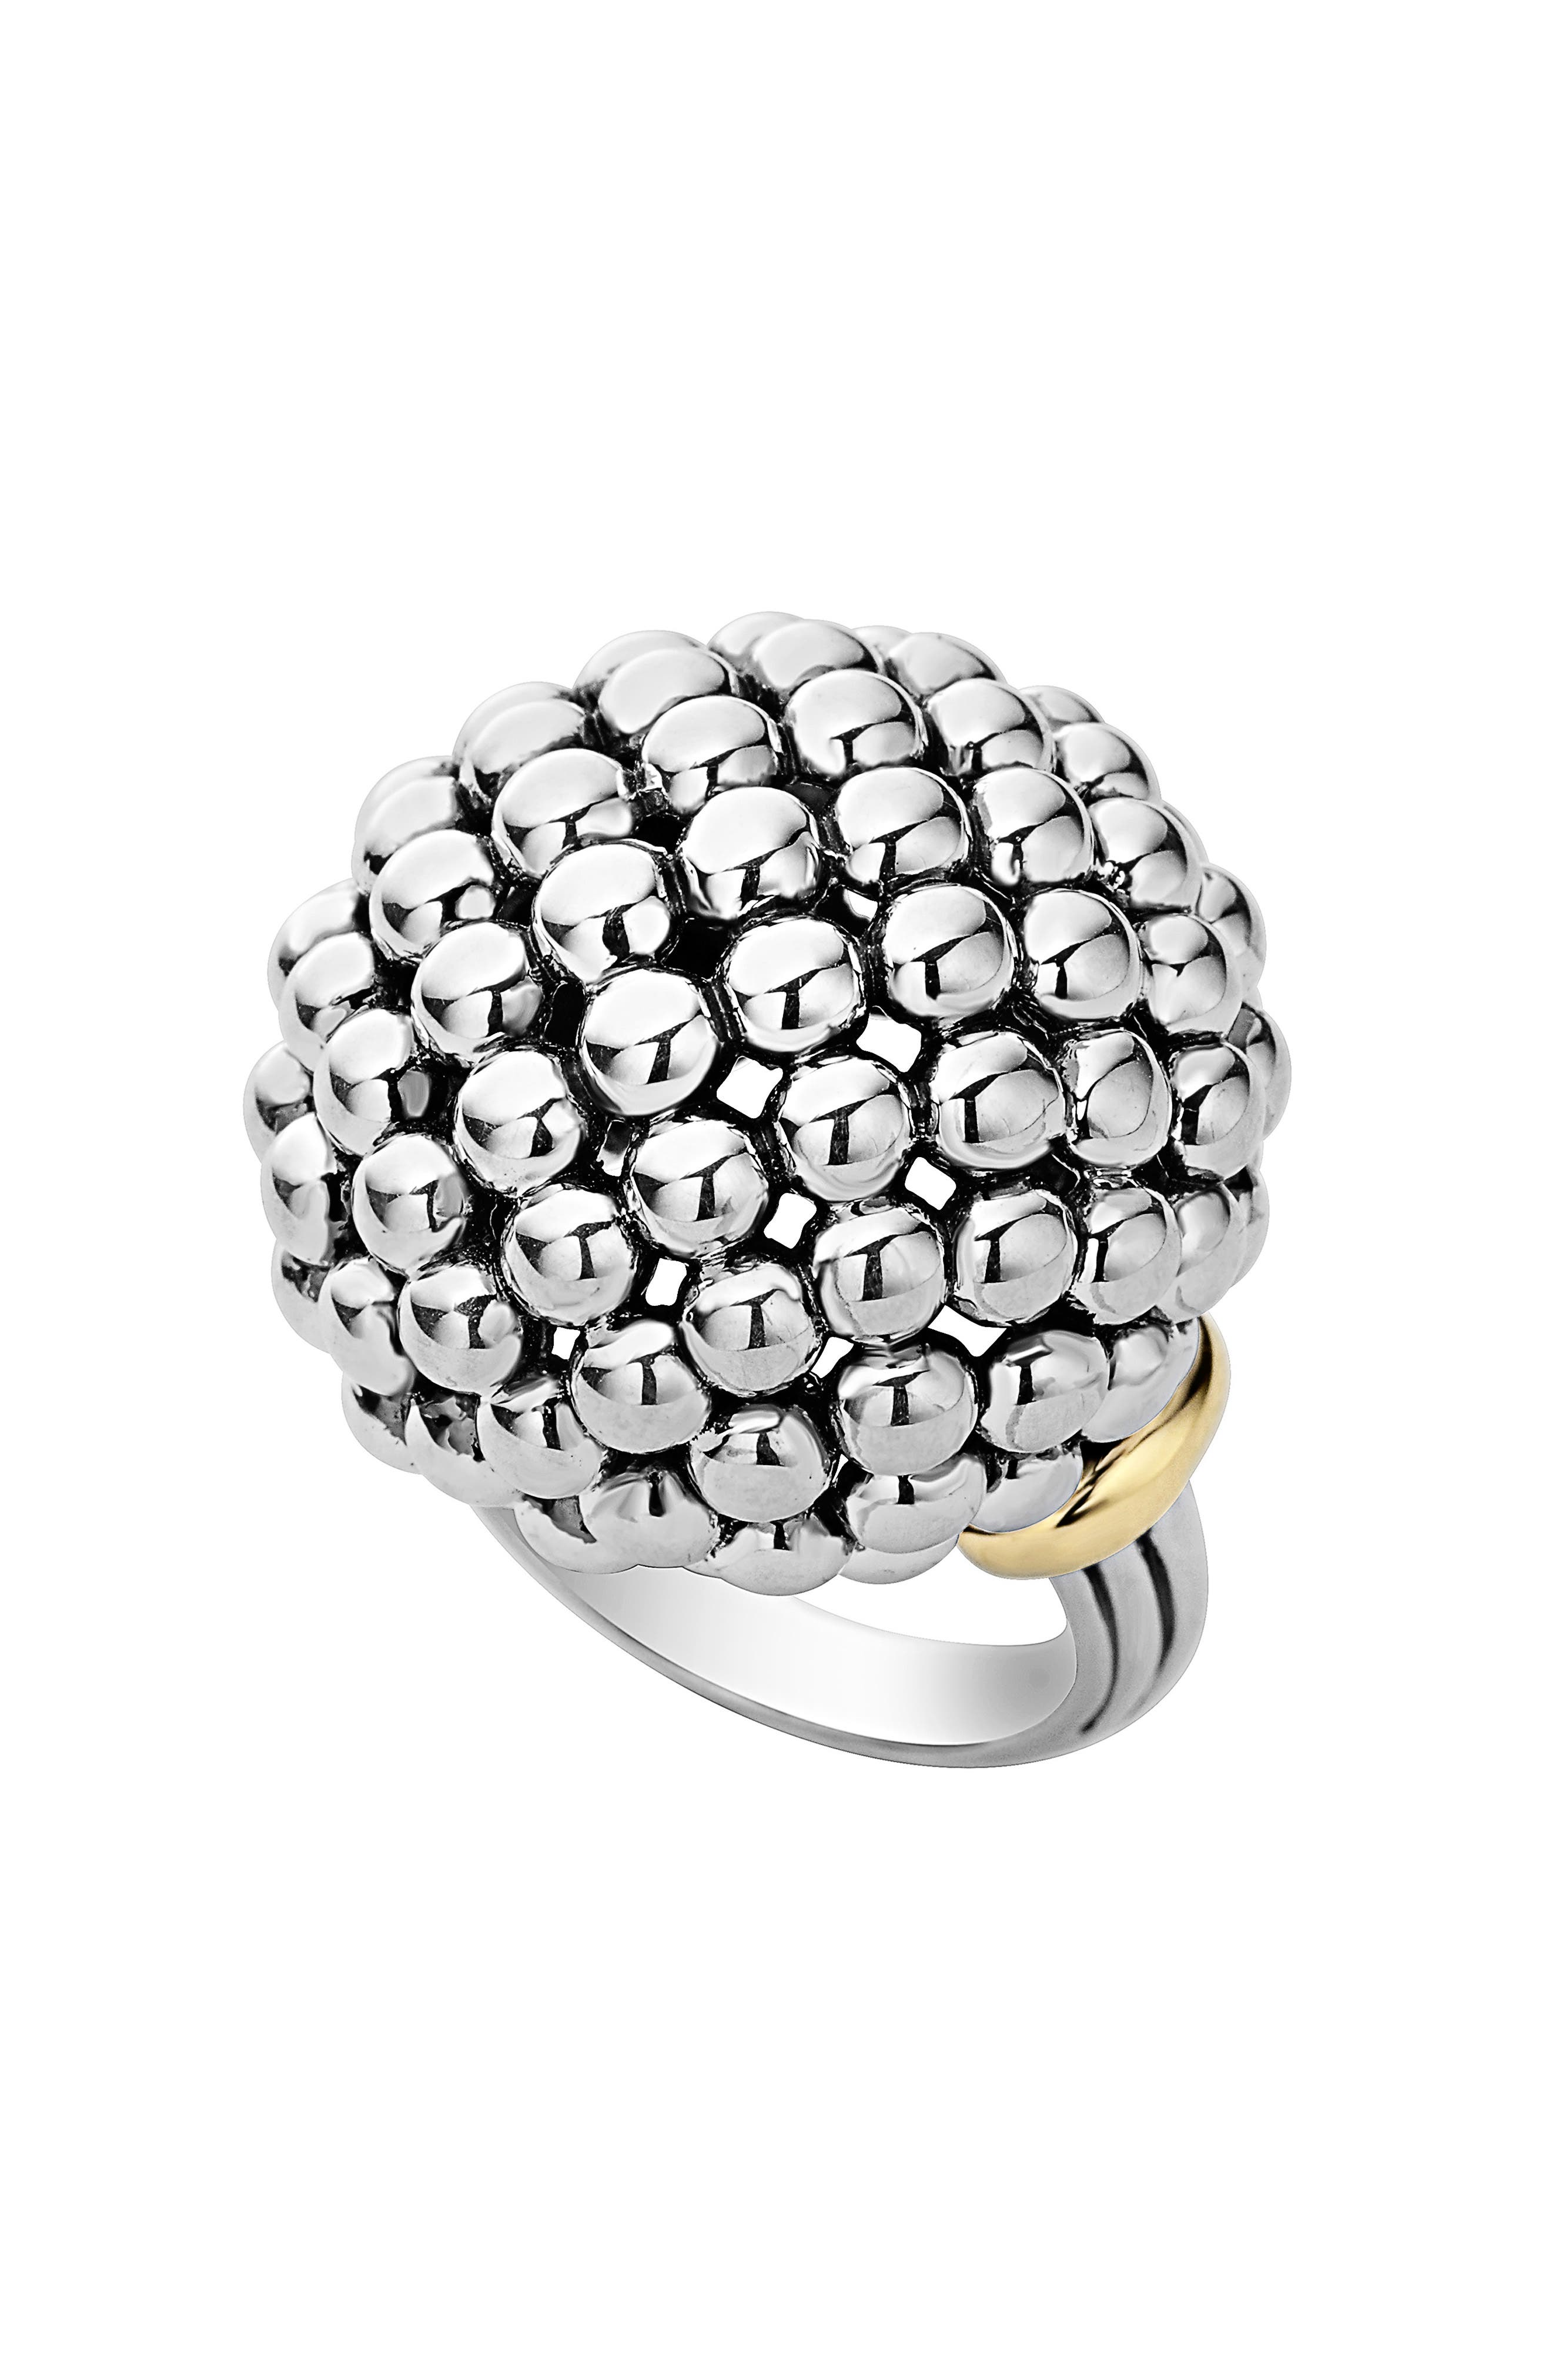 'Caviar Forever' Large Dome Ring,                             Alternate thumbnail 2, color,                             040